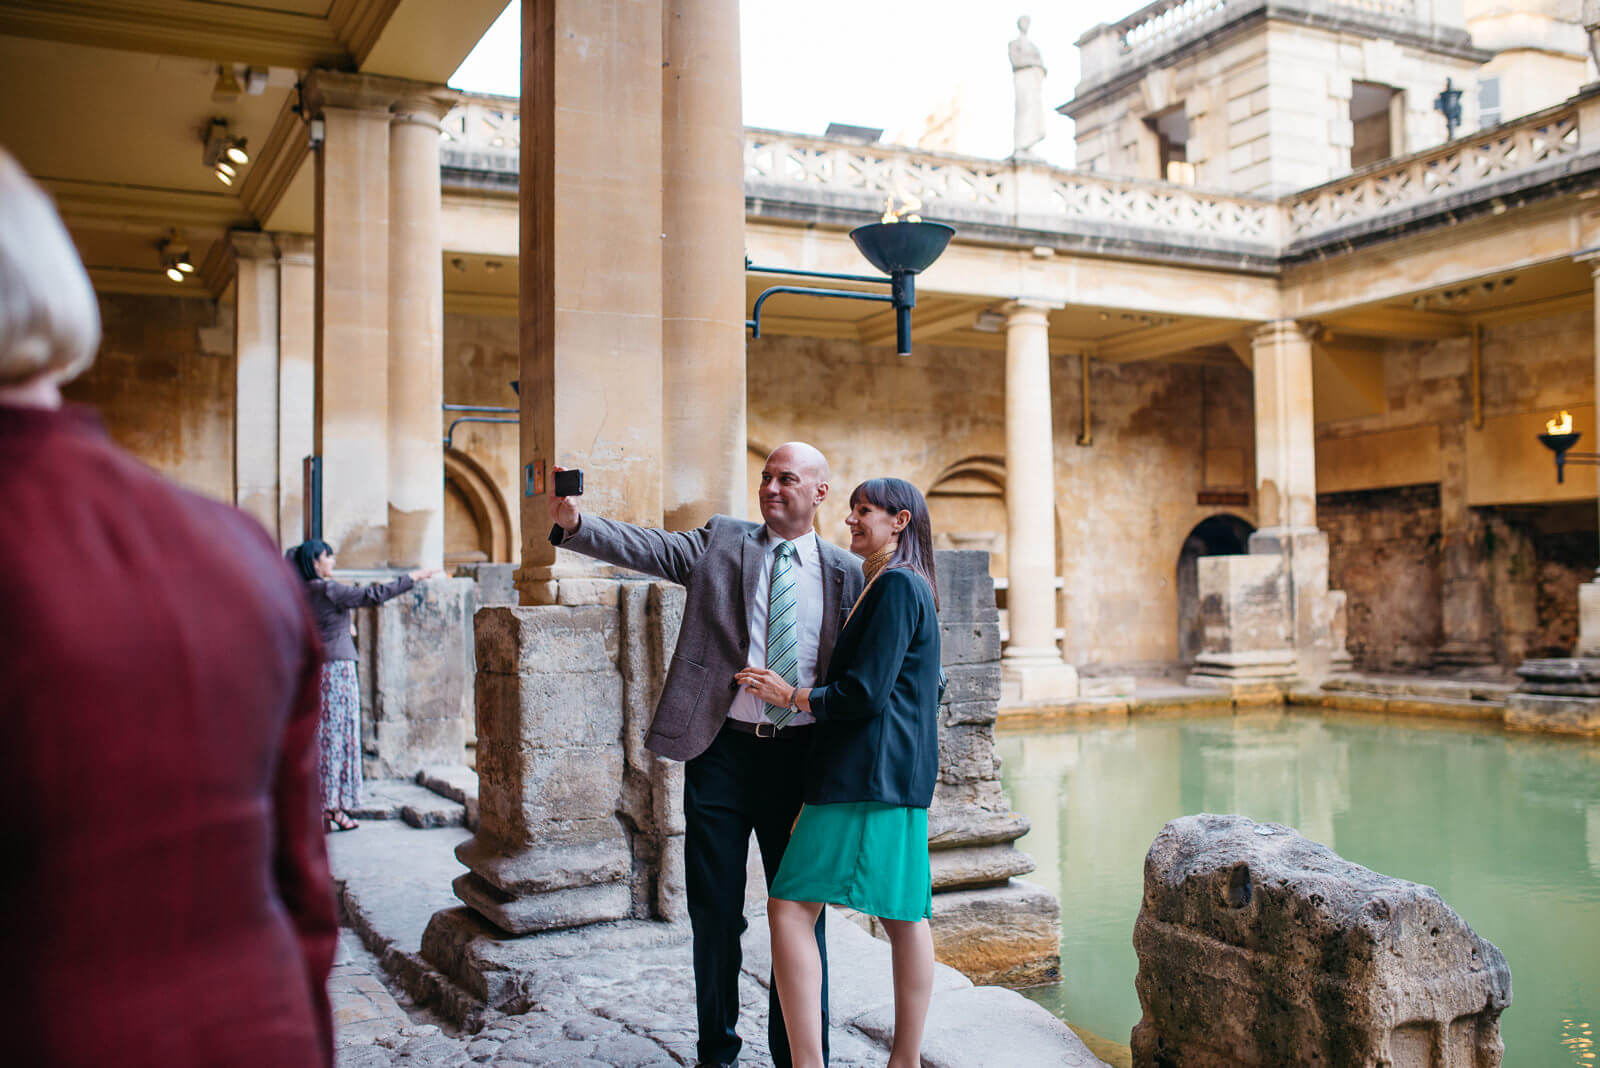 Guests taking selfies inside the Roman Baths